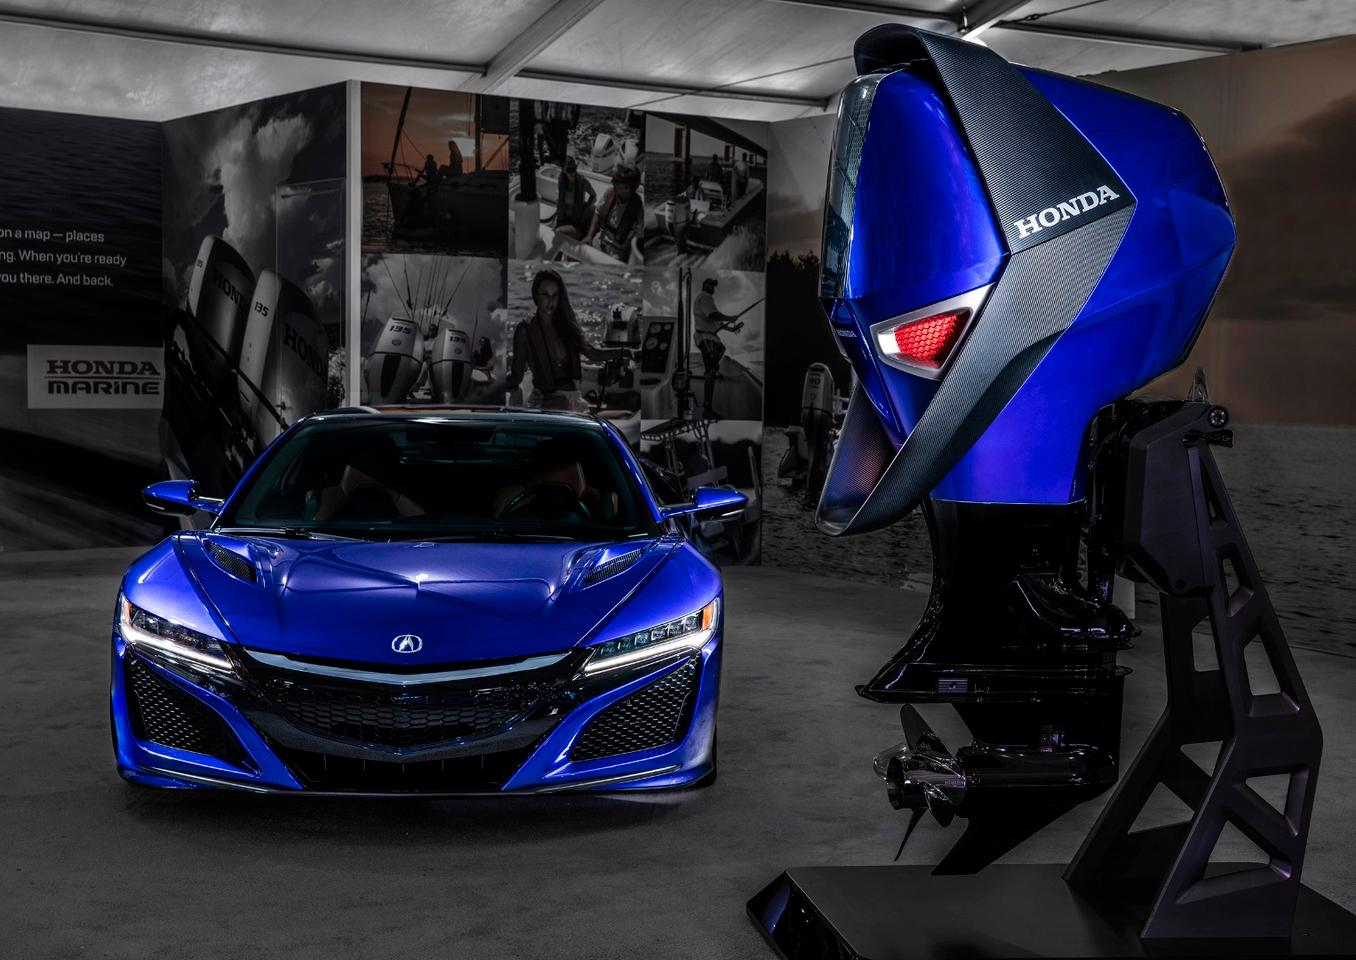 At the Miami show,Honda showed the conceptengine with the car that inspired it